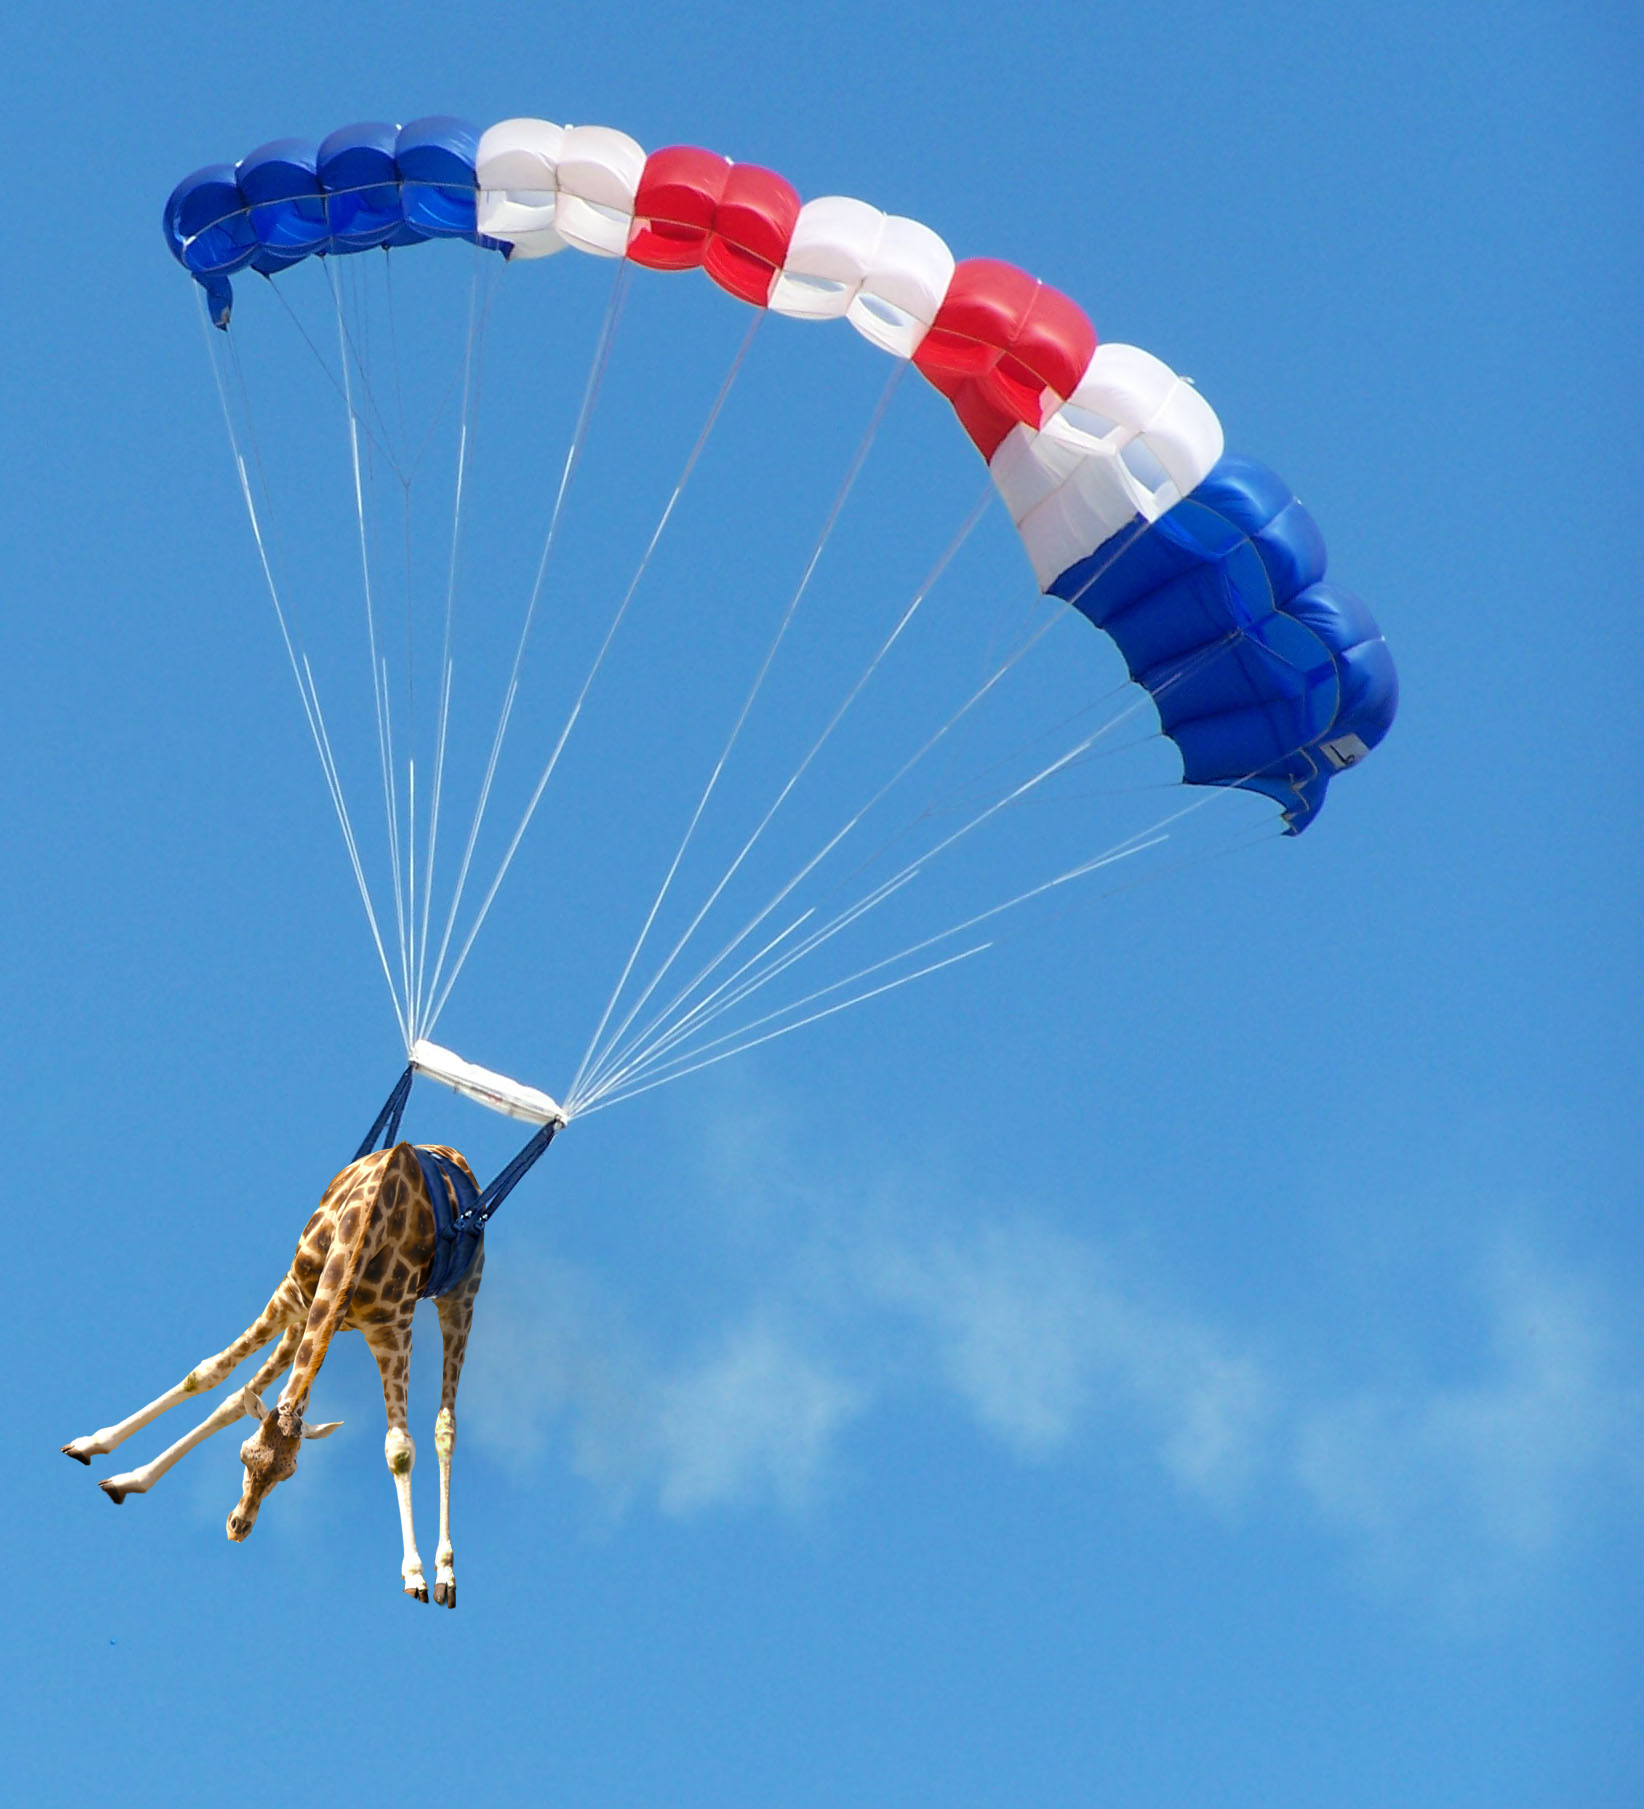 Parachutist giraffe (15135) picture by mqtrf, in album ...